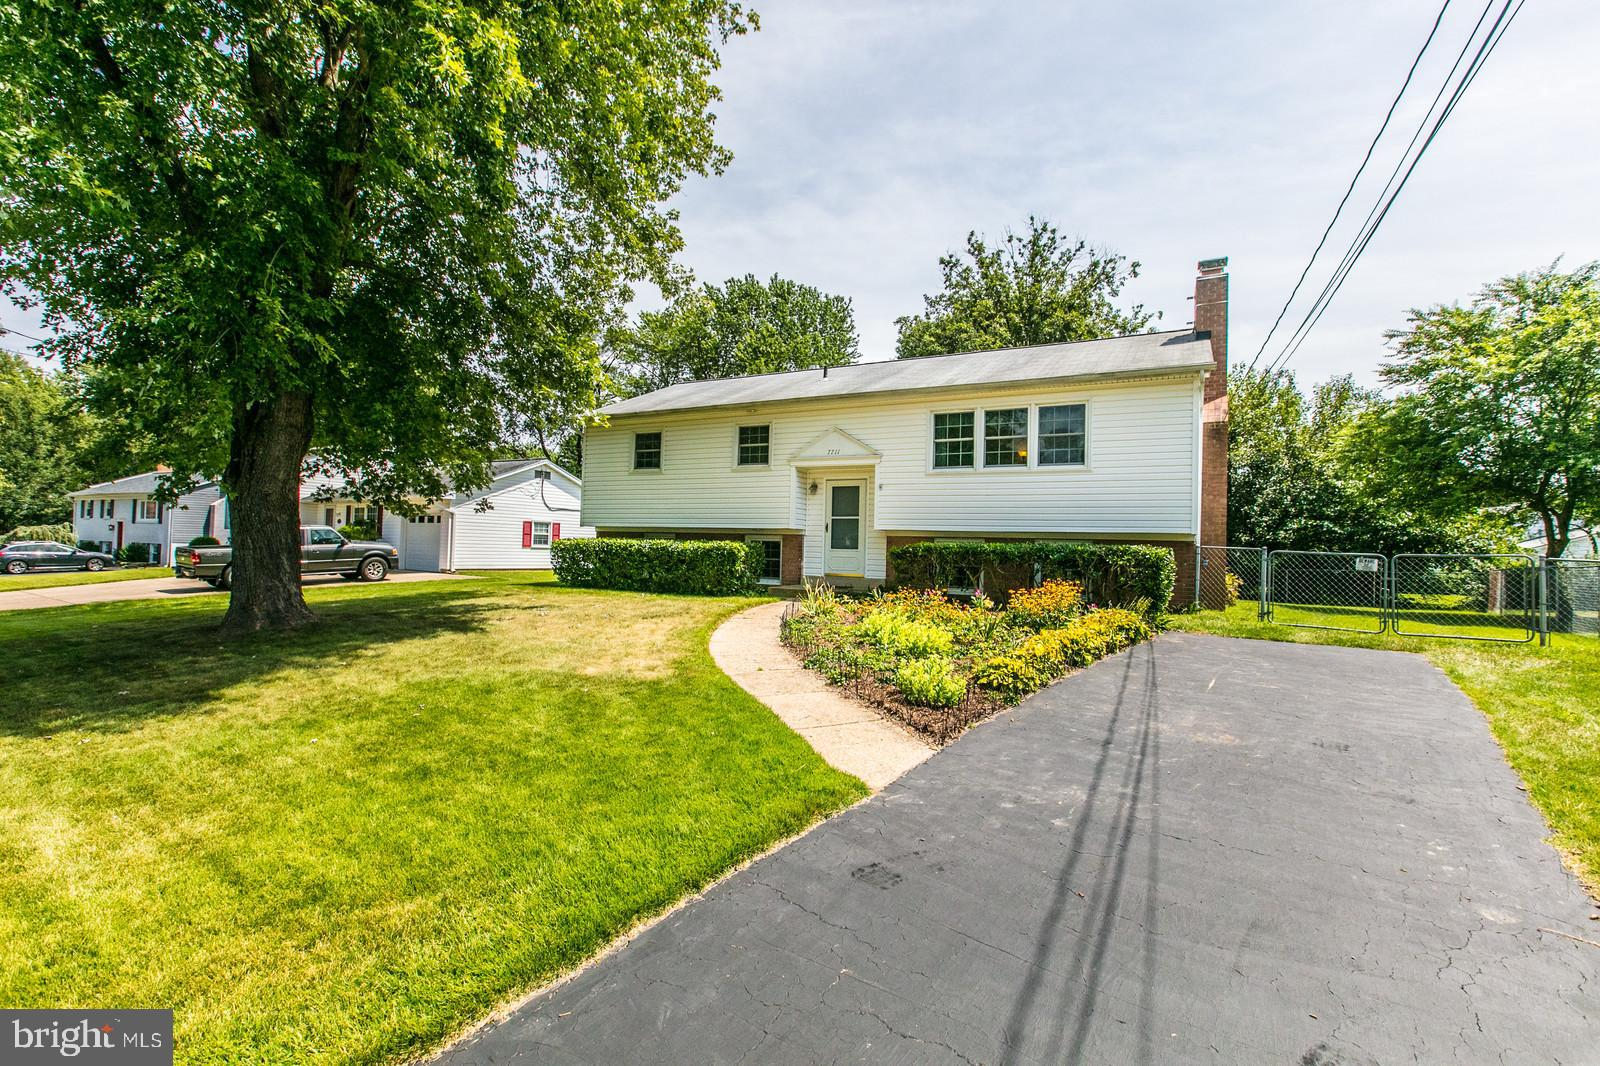 Meticulously cared for single family home on cul-de-sac in sought after Hayfield Farm! Updates include Pella windows throughout, 2018 water heater, 2014 roof, July 2019 Carpet on lower level, 2019 electrical panel (200 amp), 2019 paint throughout, and all stainless steel appliances. Main level includes stunning oak hardwood floors, spacious kitchen, wood burning fireplace, 3 bedrooms and, spacious full bath. Just off of kitchen you have the large deck and screened in porch with ceiling fan, which is perfect for entertaining guests, or for enjoying the views of your private rear yard. Walk-out lower level includes 4th legal bedroom, full bath, storage in utility room, laundry, and large recreation room with wood burning insert that can heat the entire home! Flat rear yard is fully fenced with 10ft gate to pull through truck, etc. Ample storage in attic w/pull down ladder, and 10X12 ft shed in rear yard! NO HOA, Community pool membership conveys with the home!